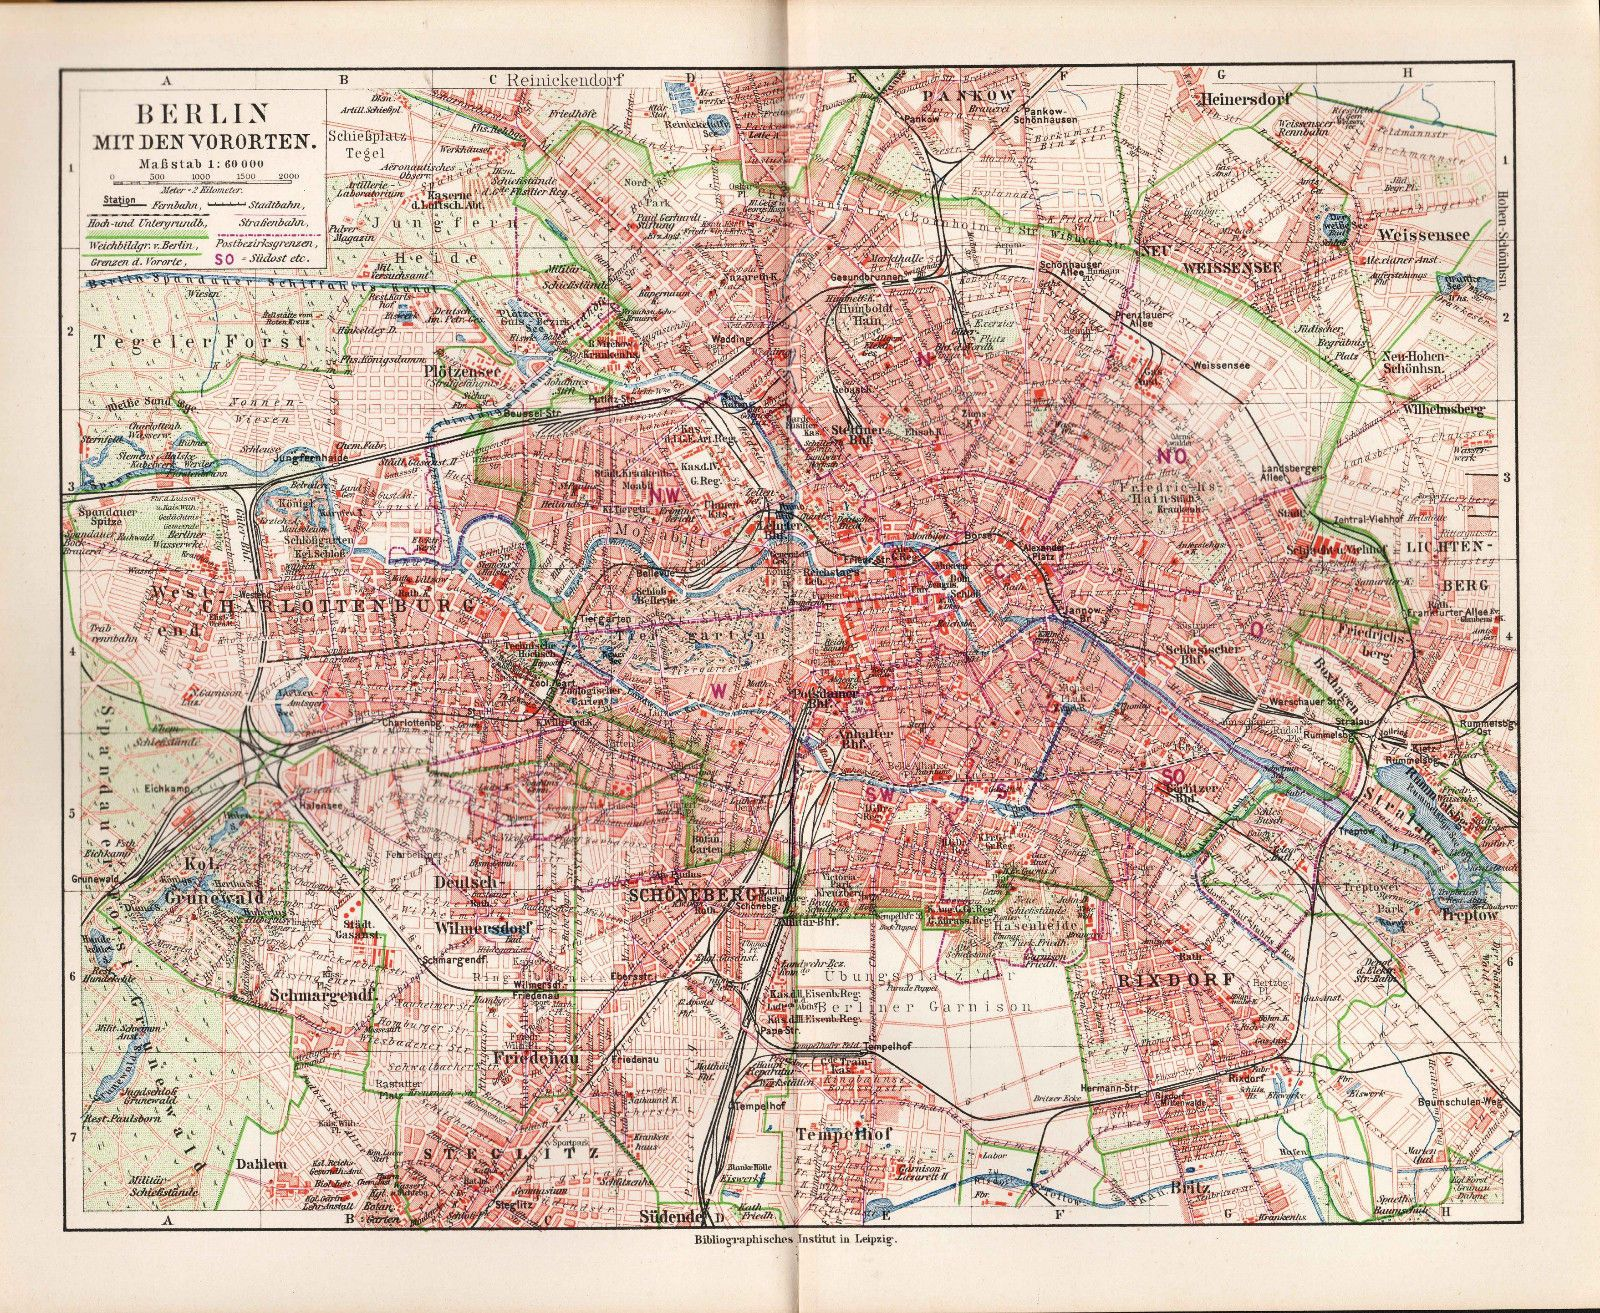 Map Of Germany 2000.Ca 1890 Germany Berlin Mit Den Vororten City Plan Antique Map In